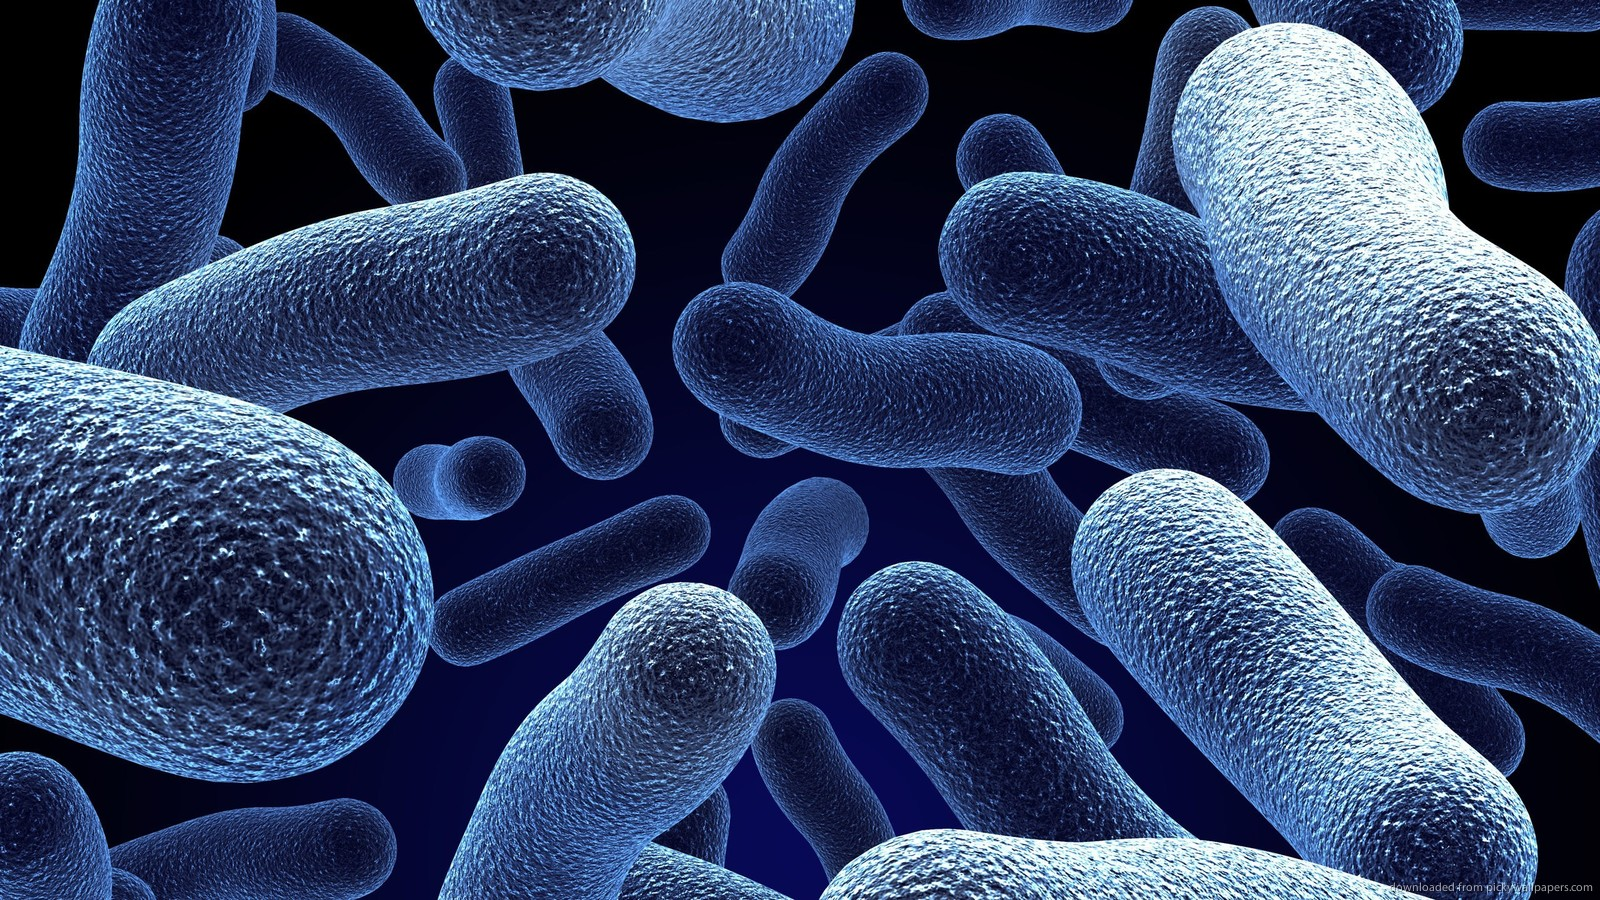 Probiotics for Healthy Individuals, Not Just Digestive Issues